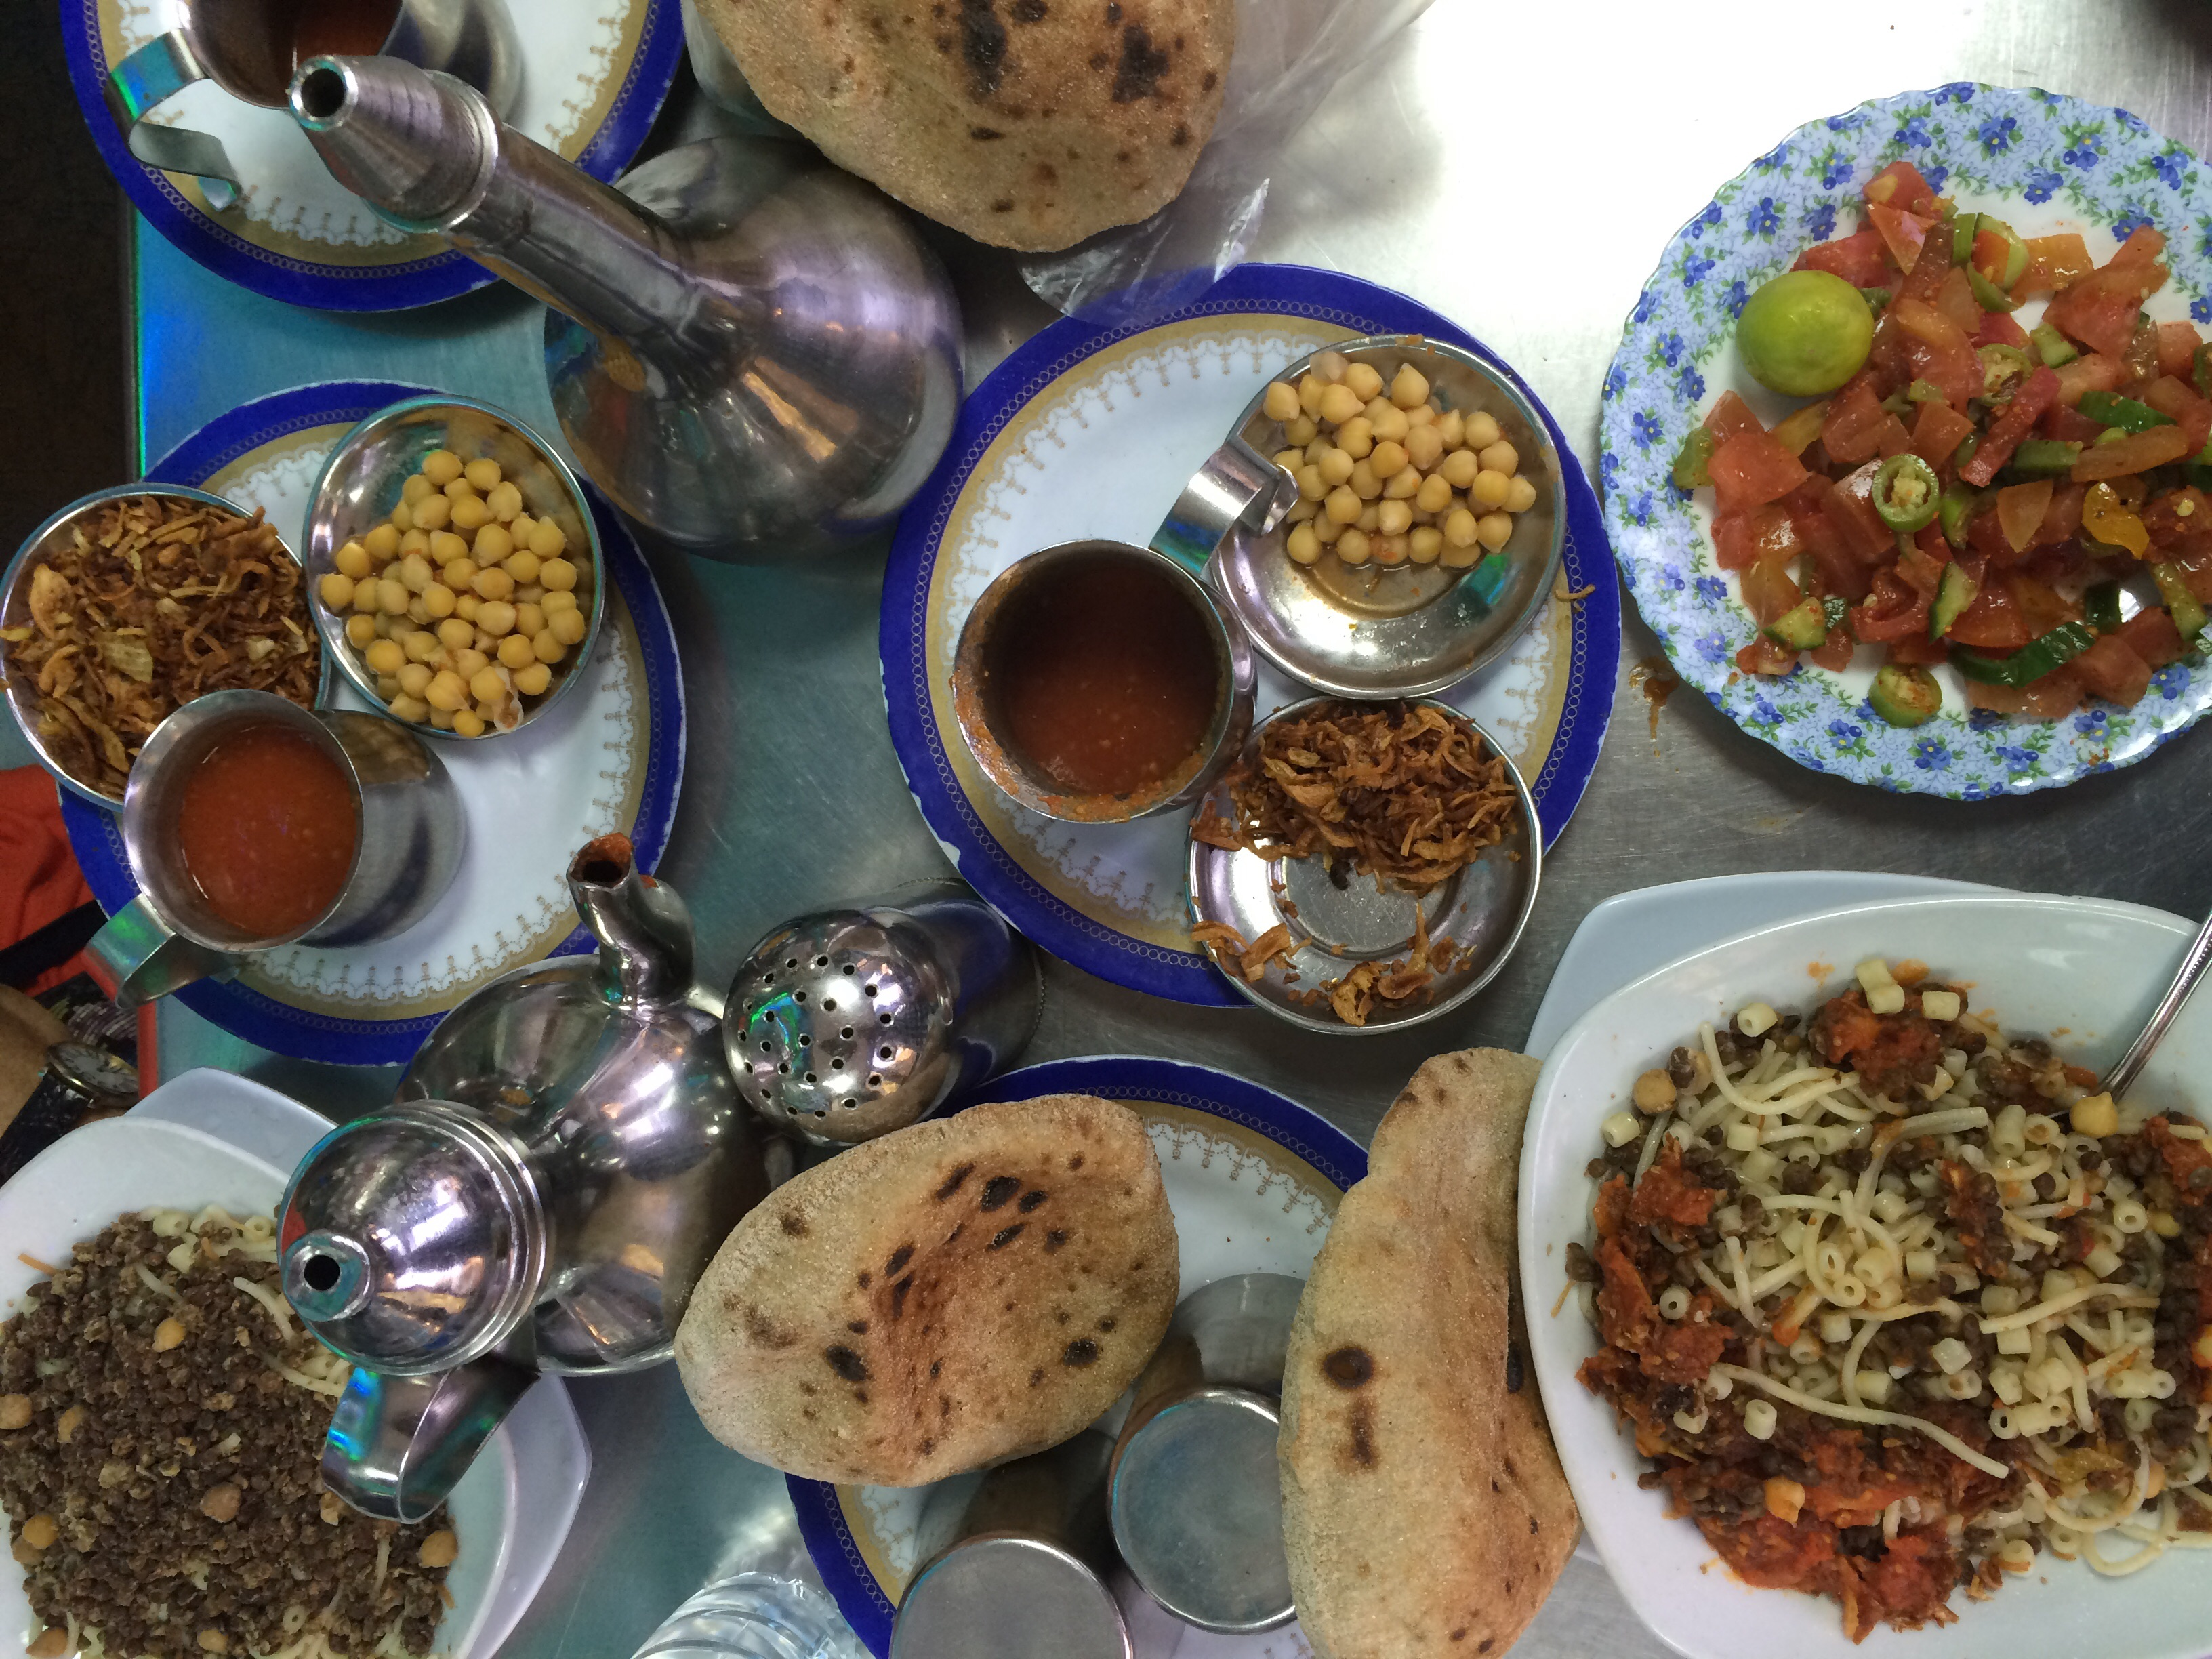 Delicious food at Koshary Abou Tarek in Cairo